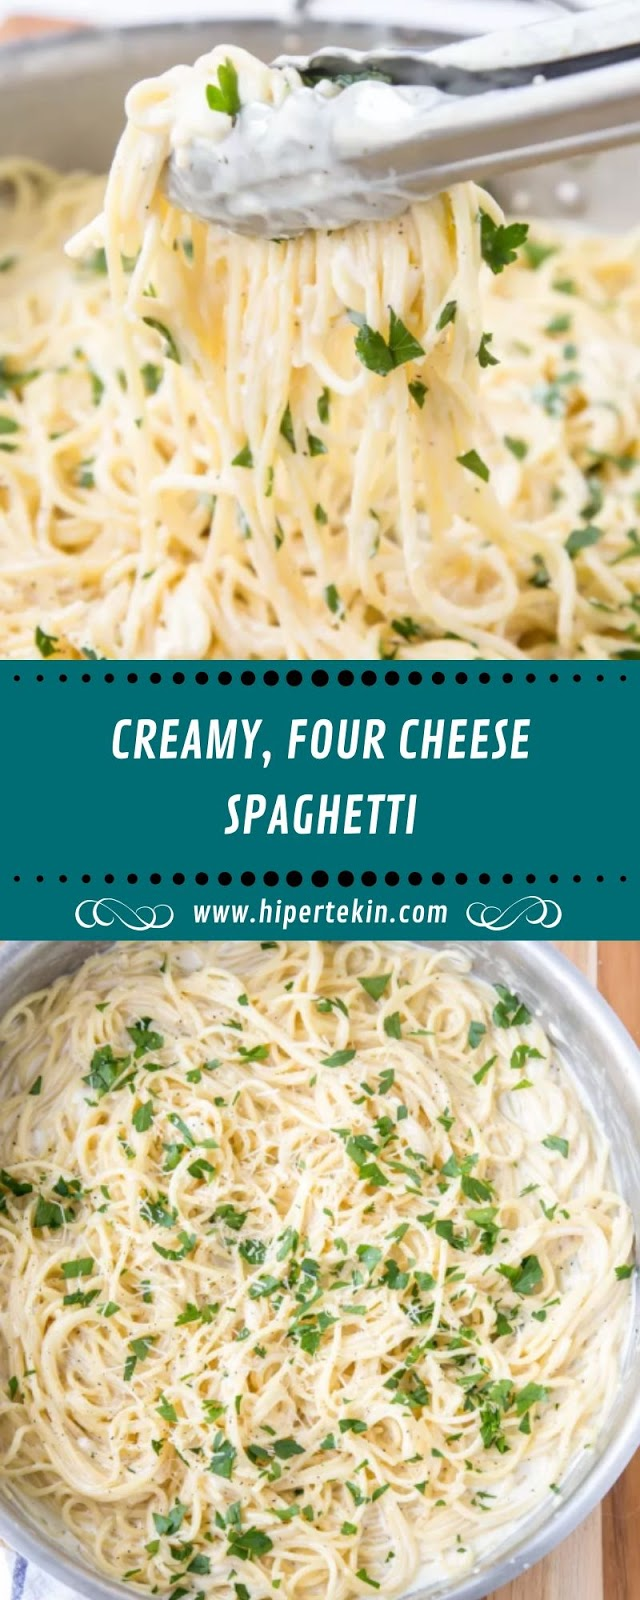 CREAMY, FOUR CHEESE SPAGHETTI